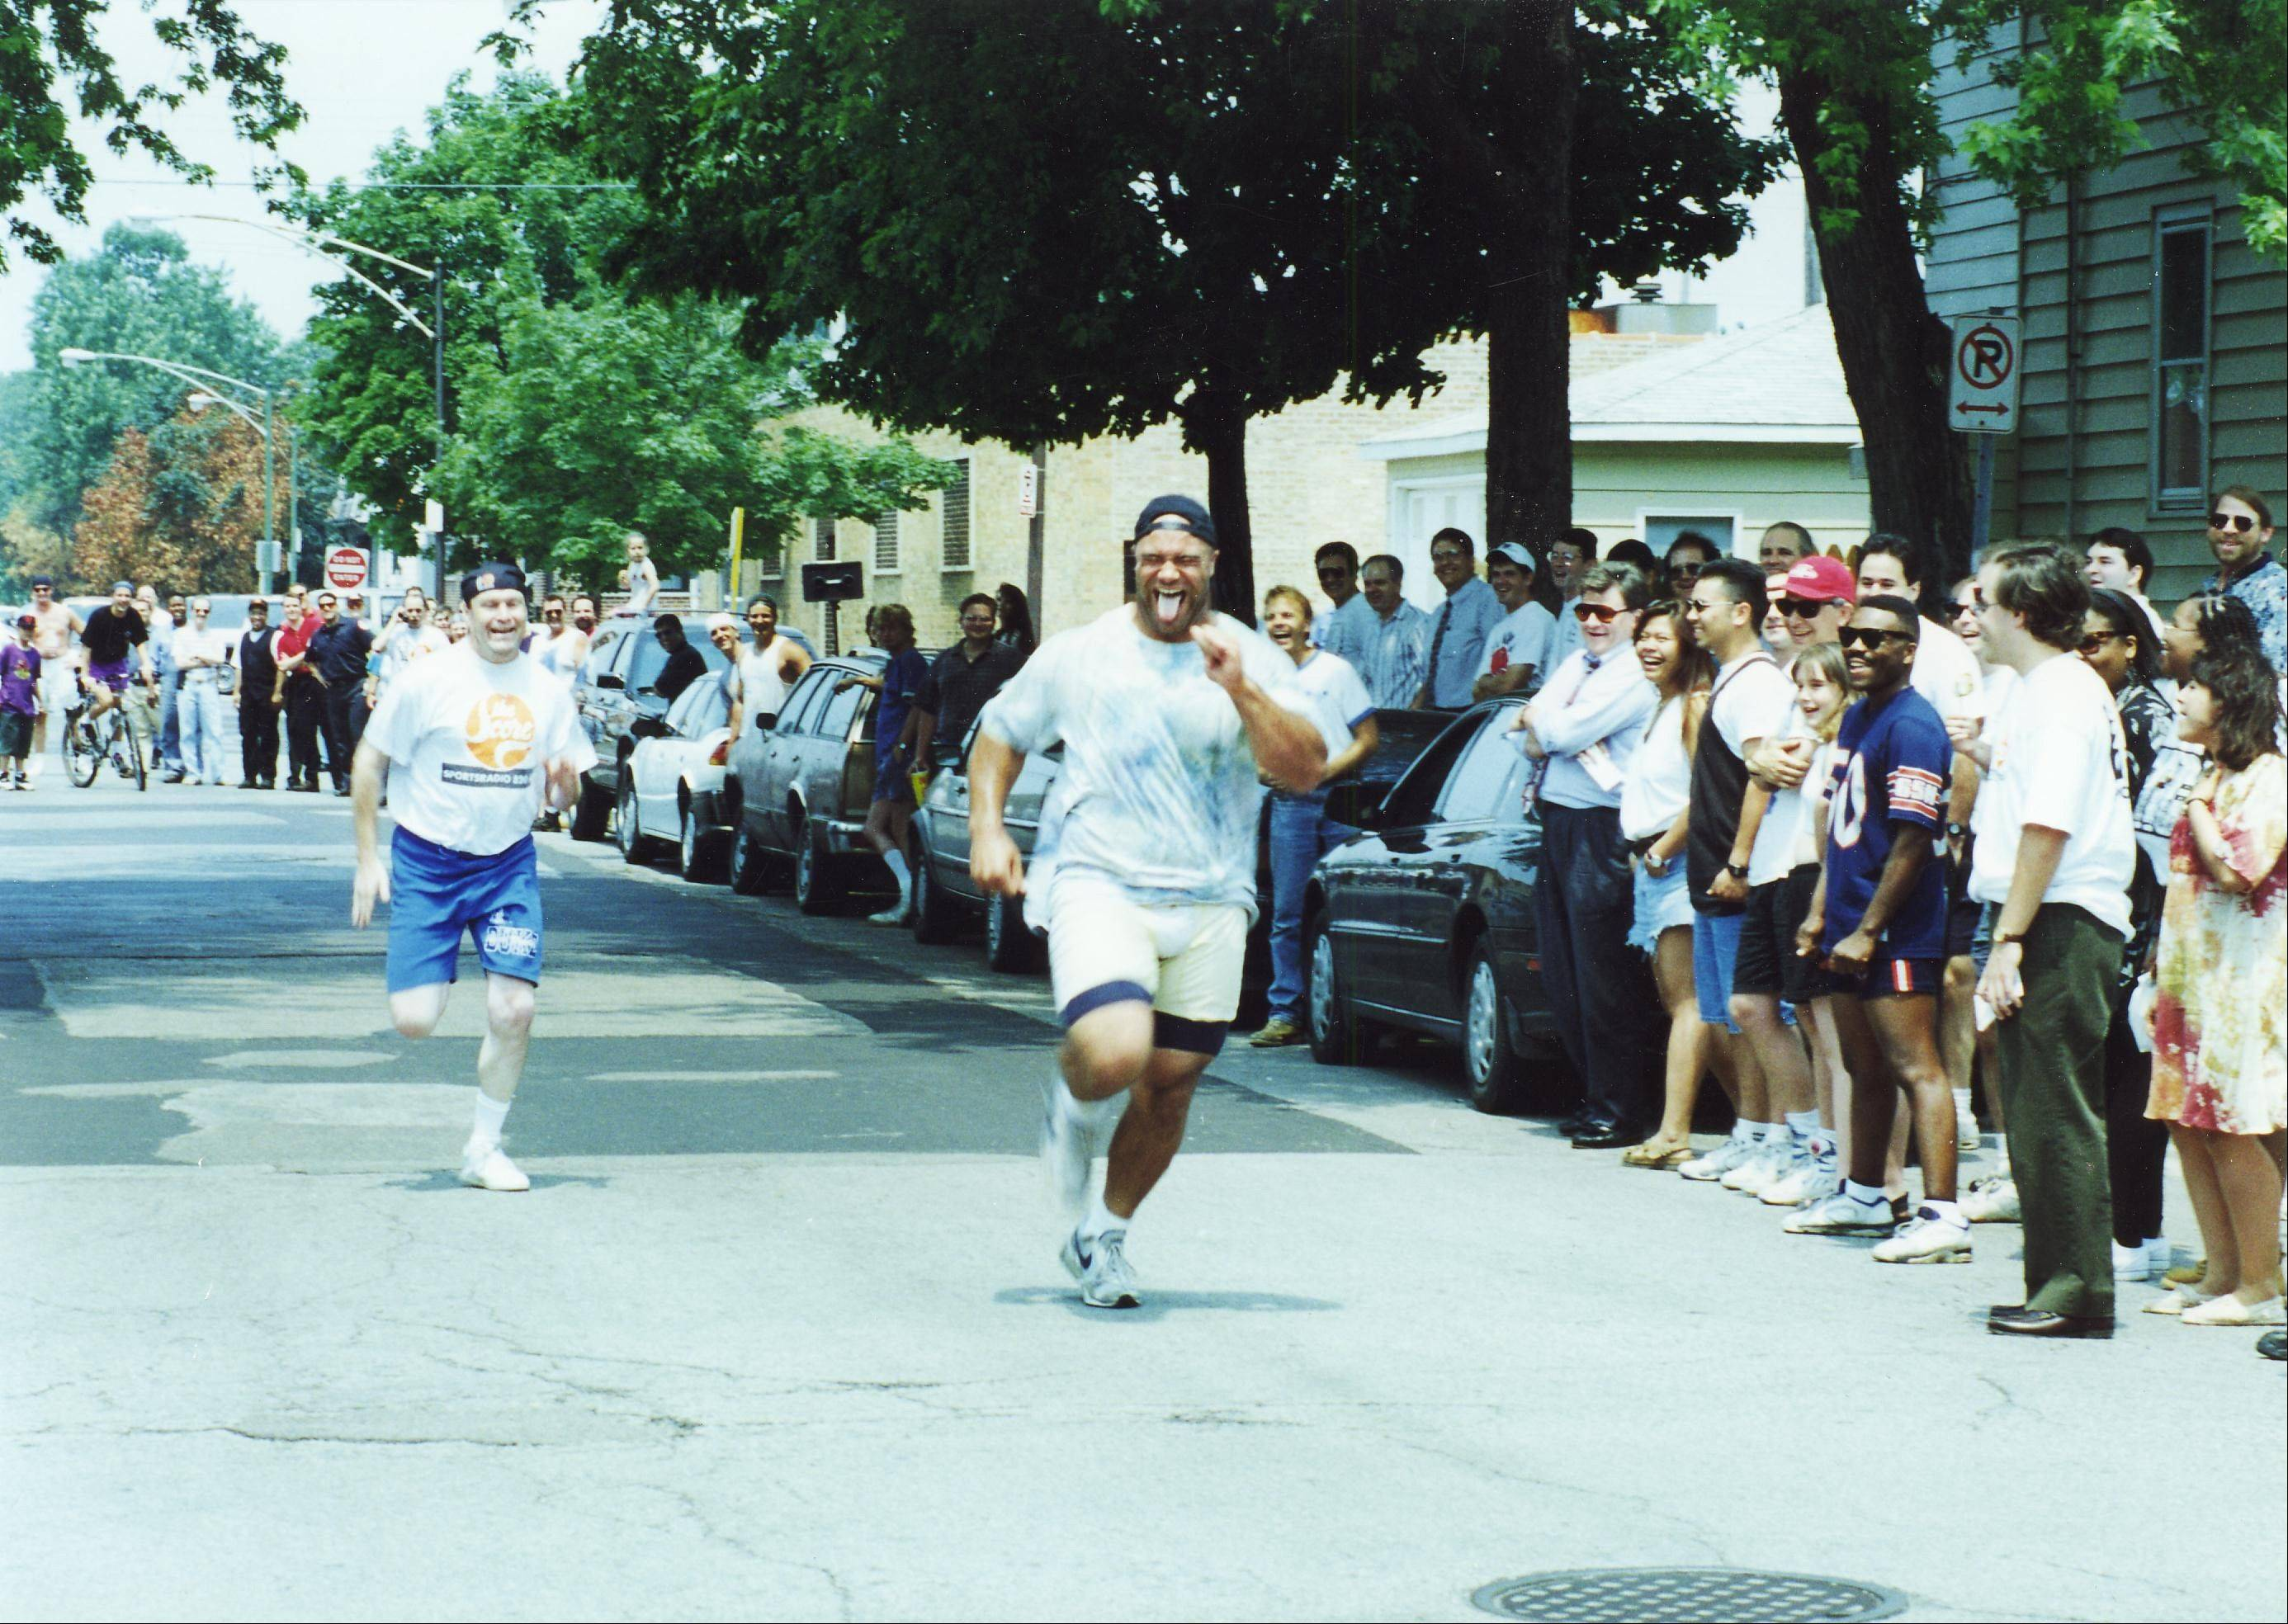 Chris Zorich agreed to Mike North�s challenge of a 100-yard race. North said he could beat Zorich, but he proved to be wrong.